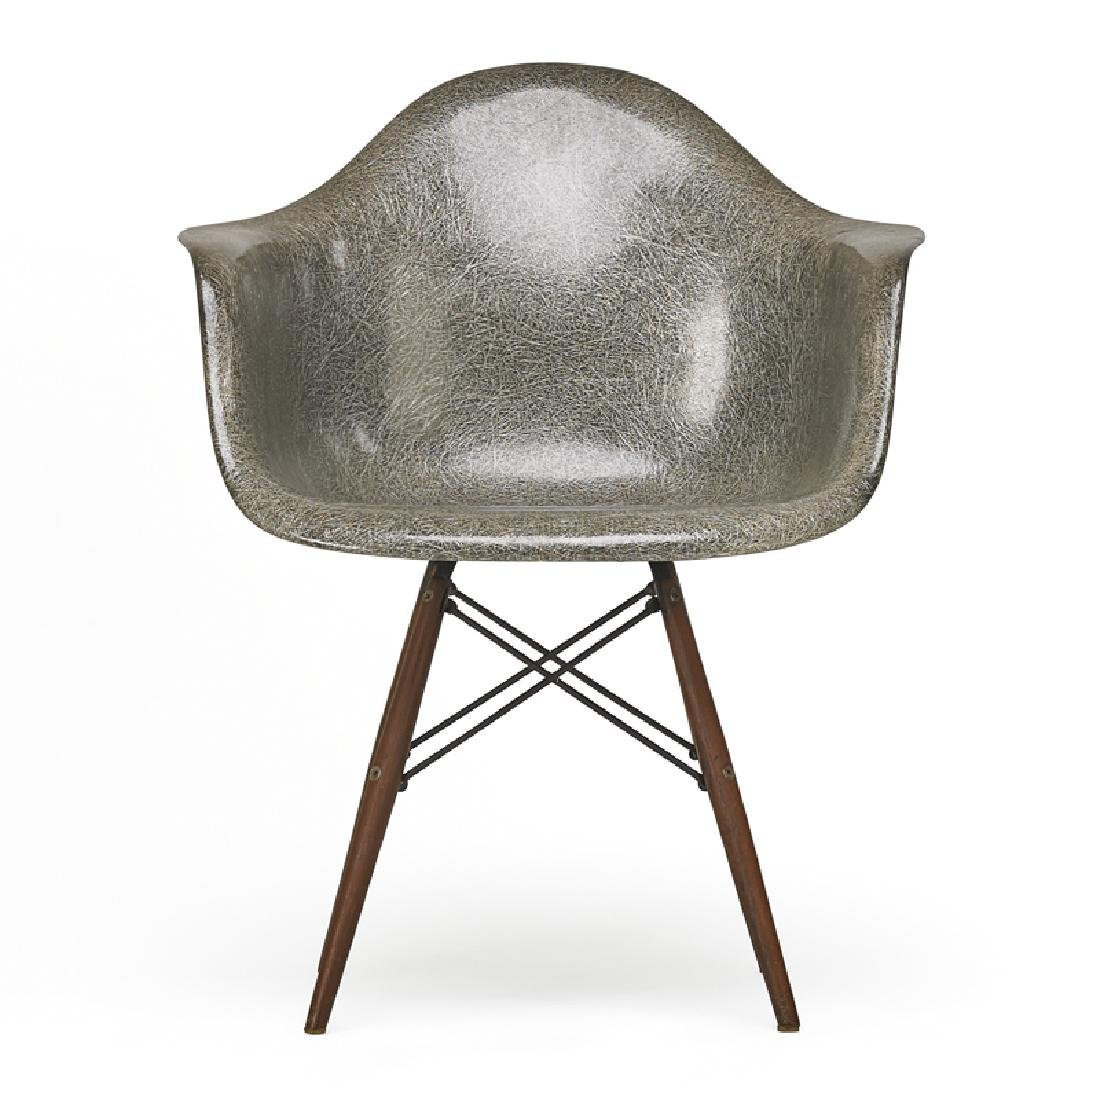 CHARLES & RAY EAMES; HERMAN MILLER/ZENITH Chair